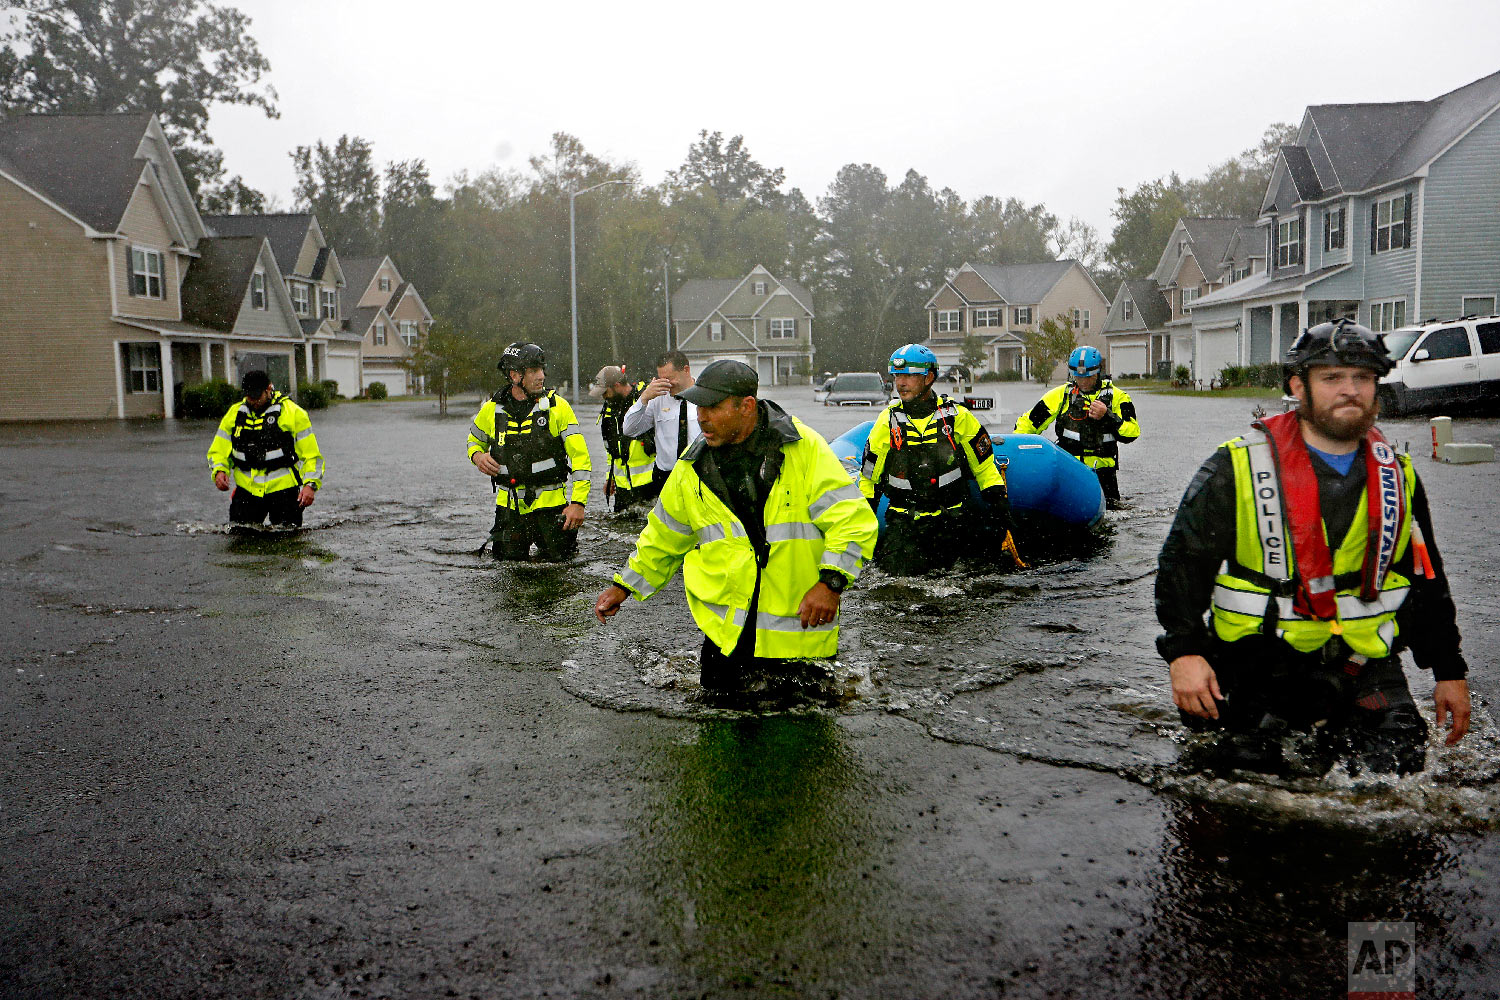 Members of the North Carolina Task Force urban search and rescue team wade through a flooded neighborhood looking for residents who stayed behind as Florence continues to dump heavy rain in Fayetteville, N.C., on Sept. 16, 2018. (AP Photo/David Goldman)